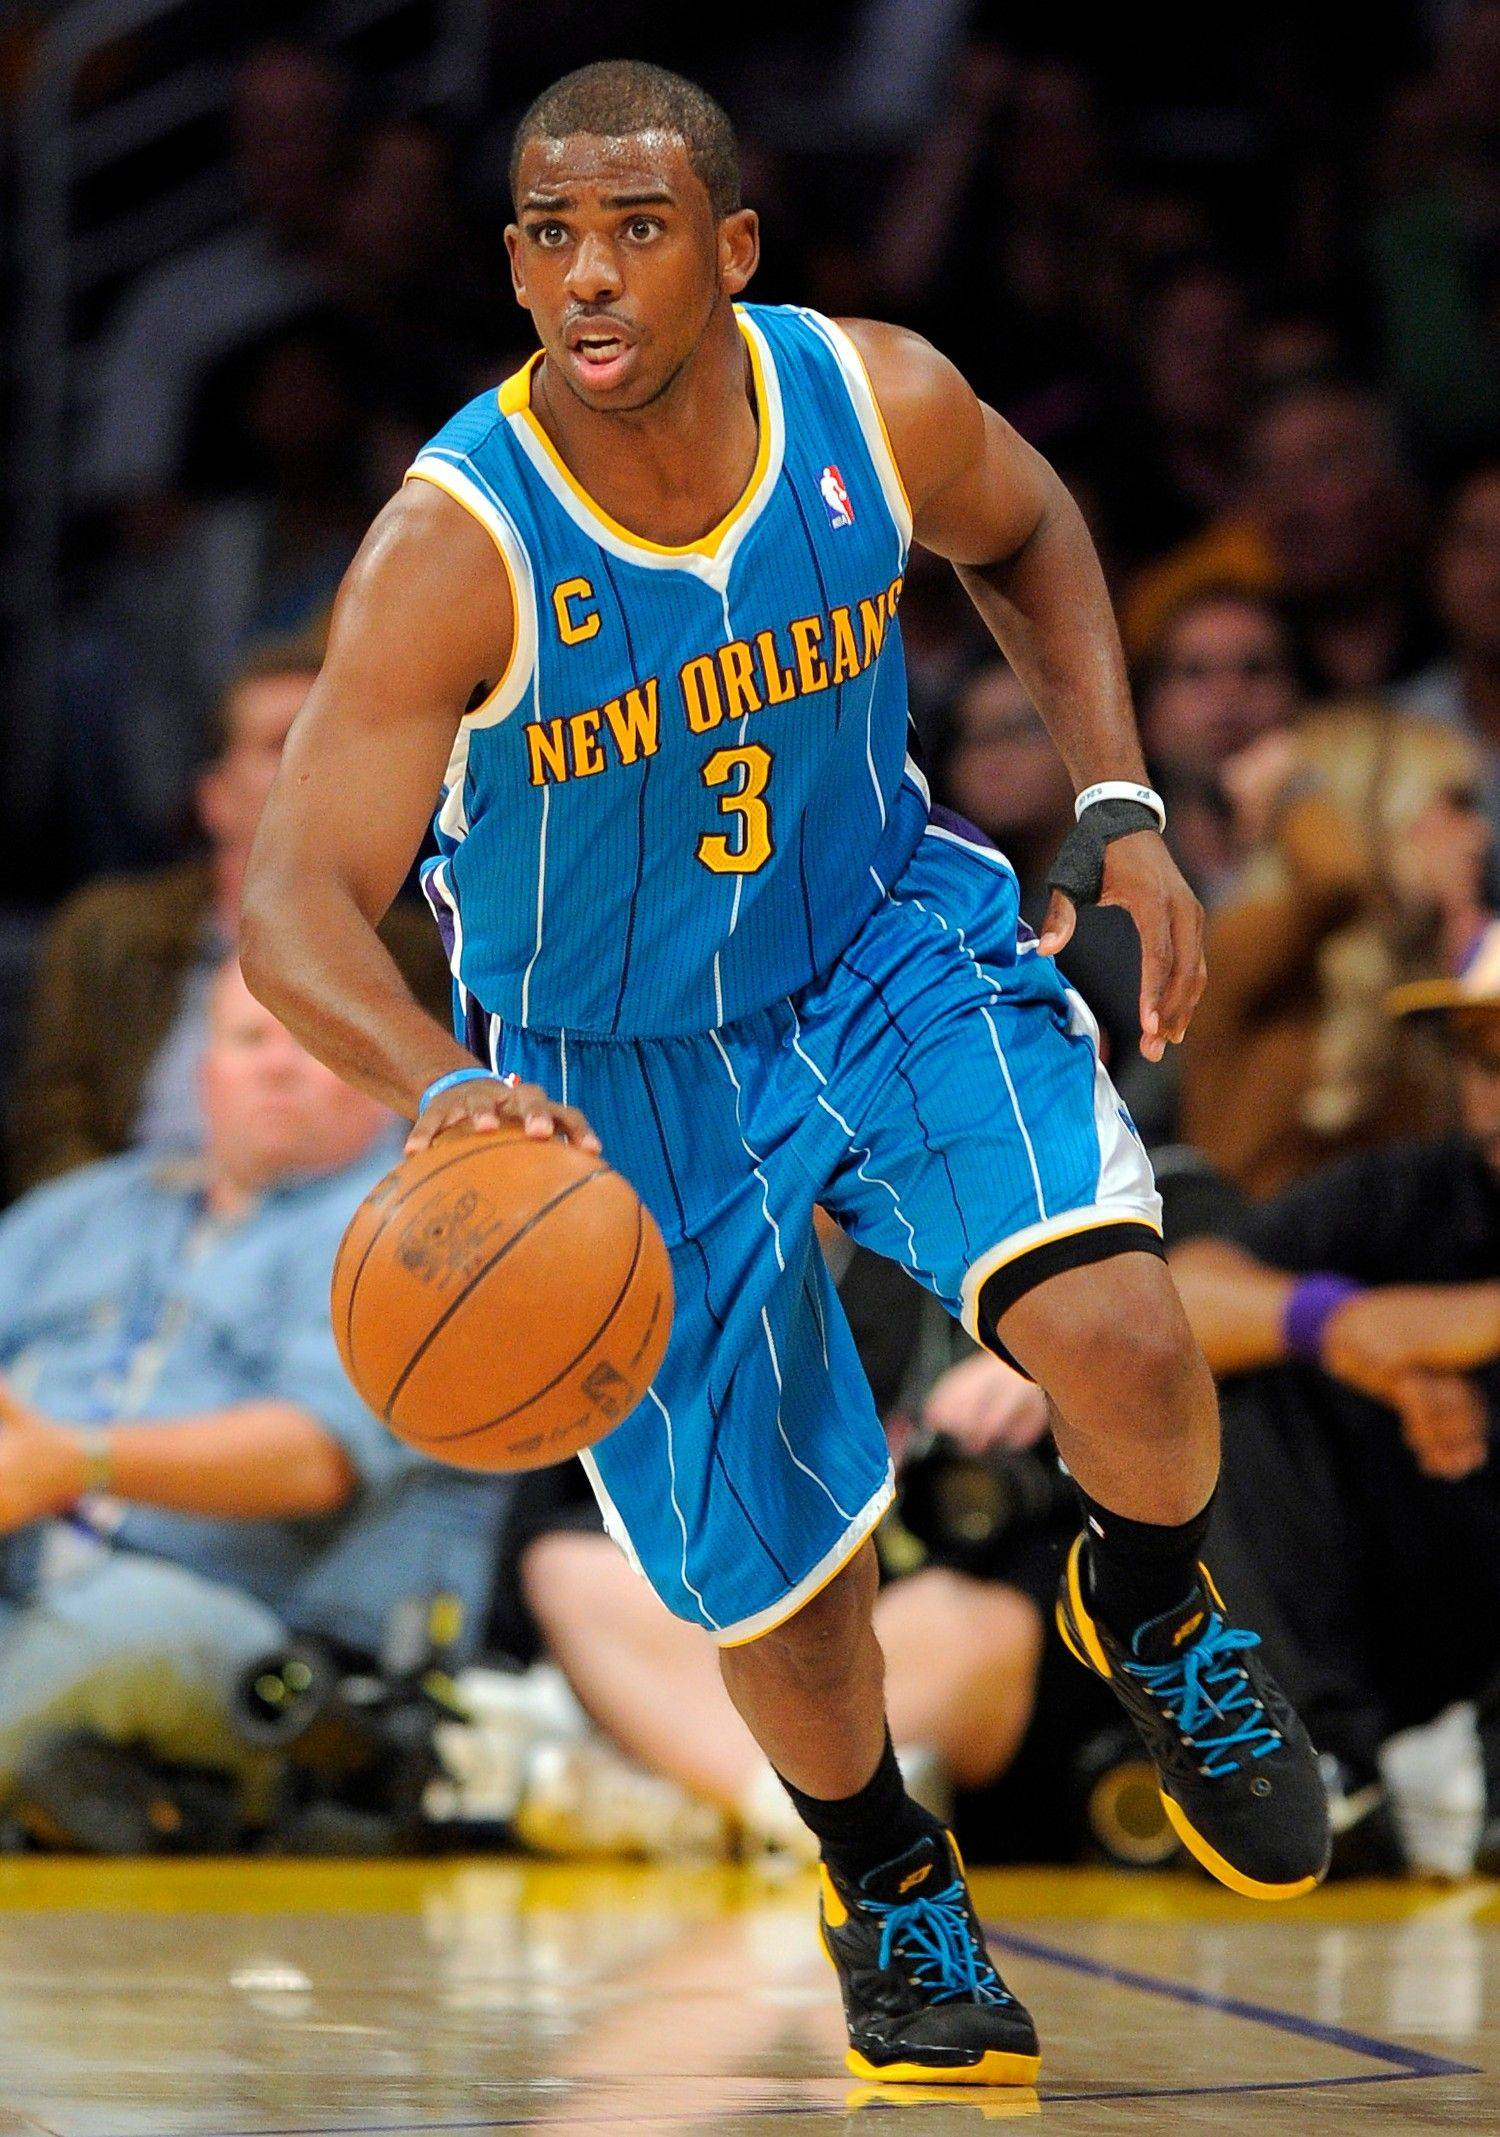 The framework of a three-team trade is in place to send New Orleans Hornets guard Chris Paul to the Los Angeles Lakers pending details of the transaction still being worked on Thursday, Dec. 8, 2011, according to a person familiar with the negotiations.